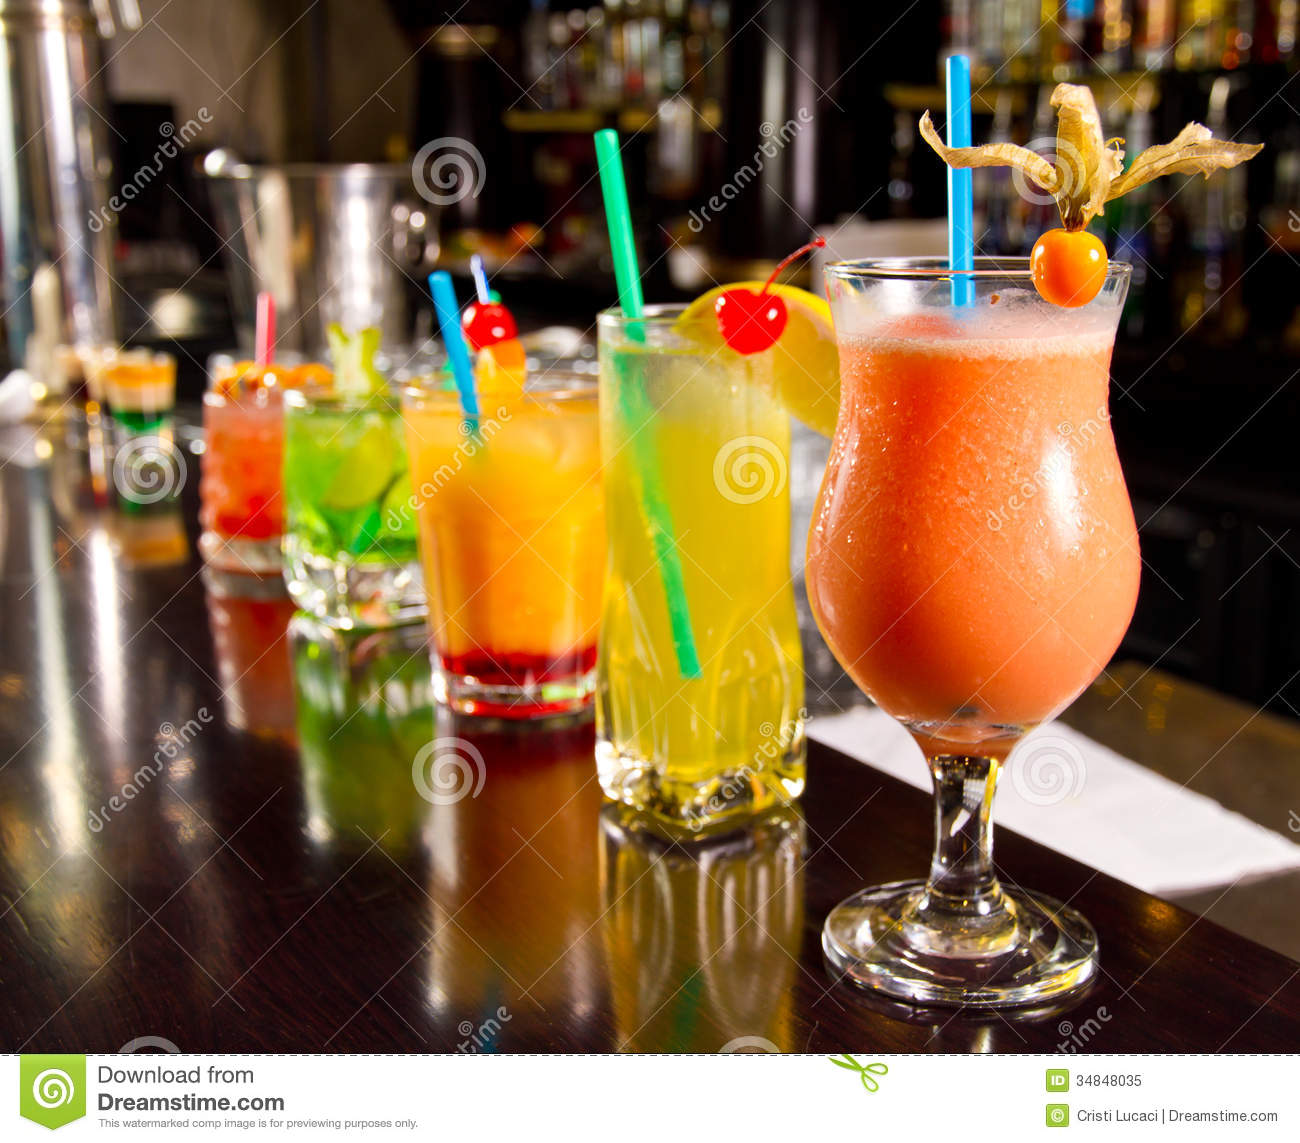 Cocktails royalty free stock photo image 34848035